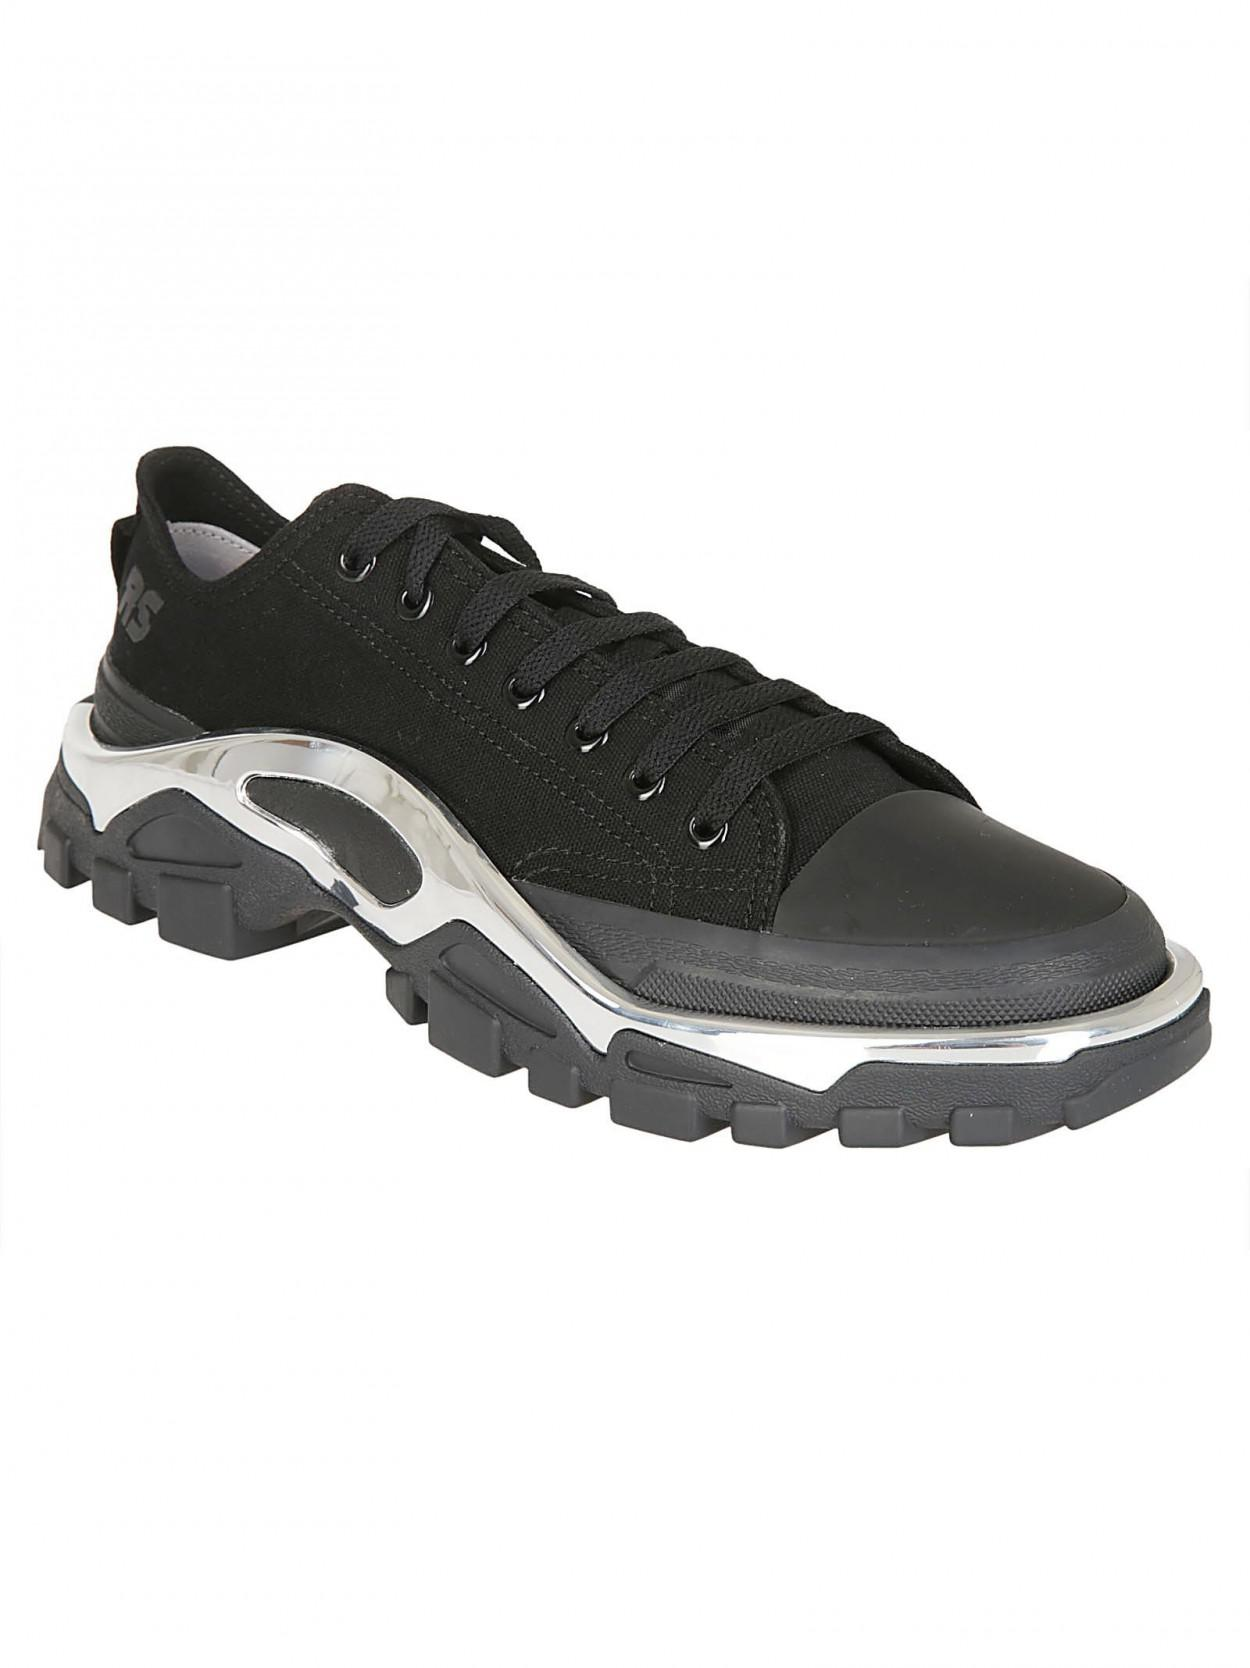 on sale 469c8 f43ed Lyst - adidas By Raf Simons ADIDAS RAF SIMONS Sneaker detroit runner nera  in Black for Men